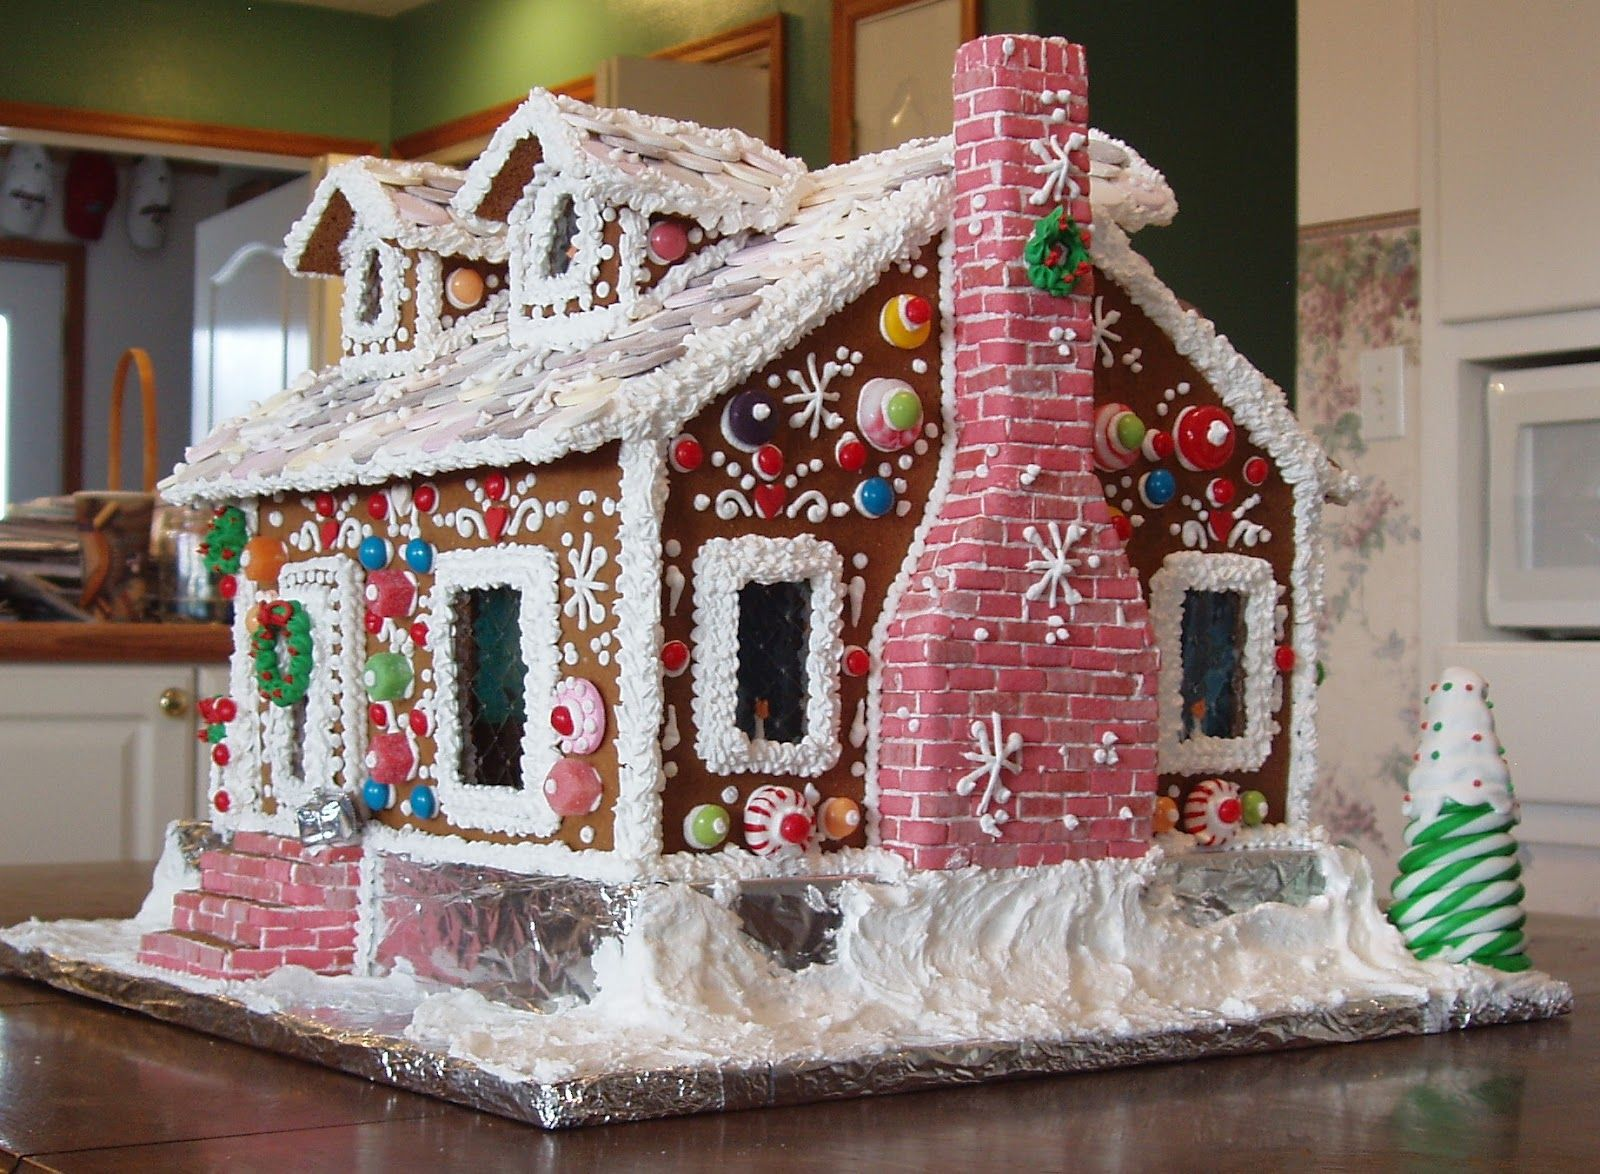 creative use of candy and colors on this victorian gingerbread house